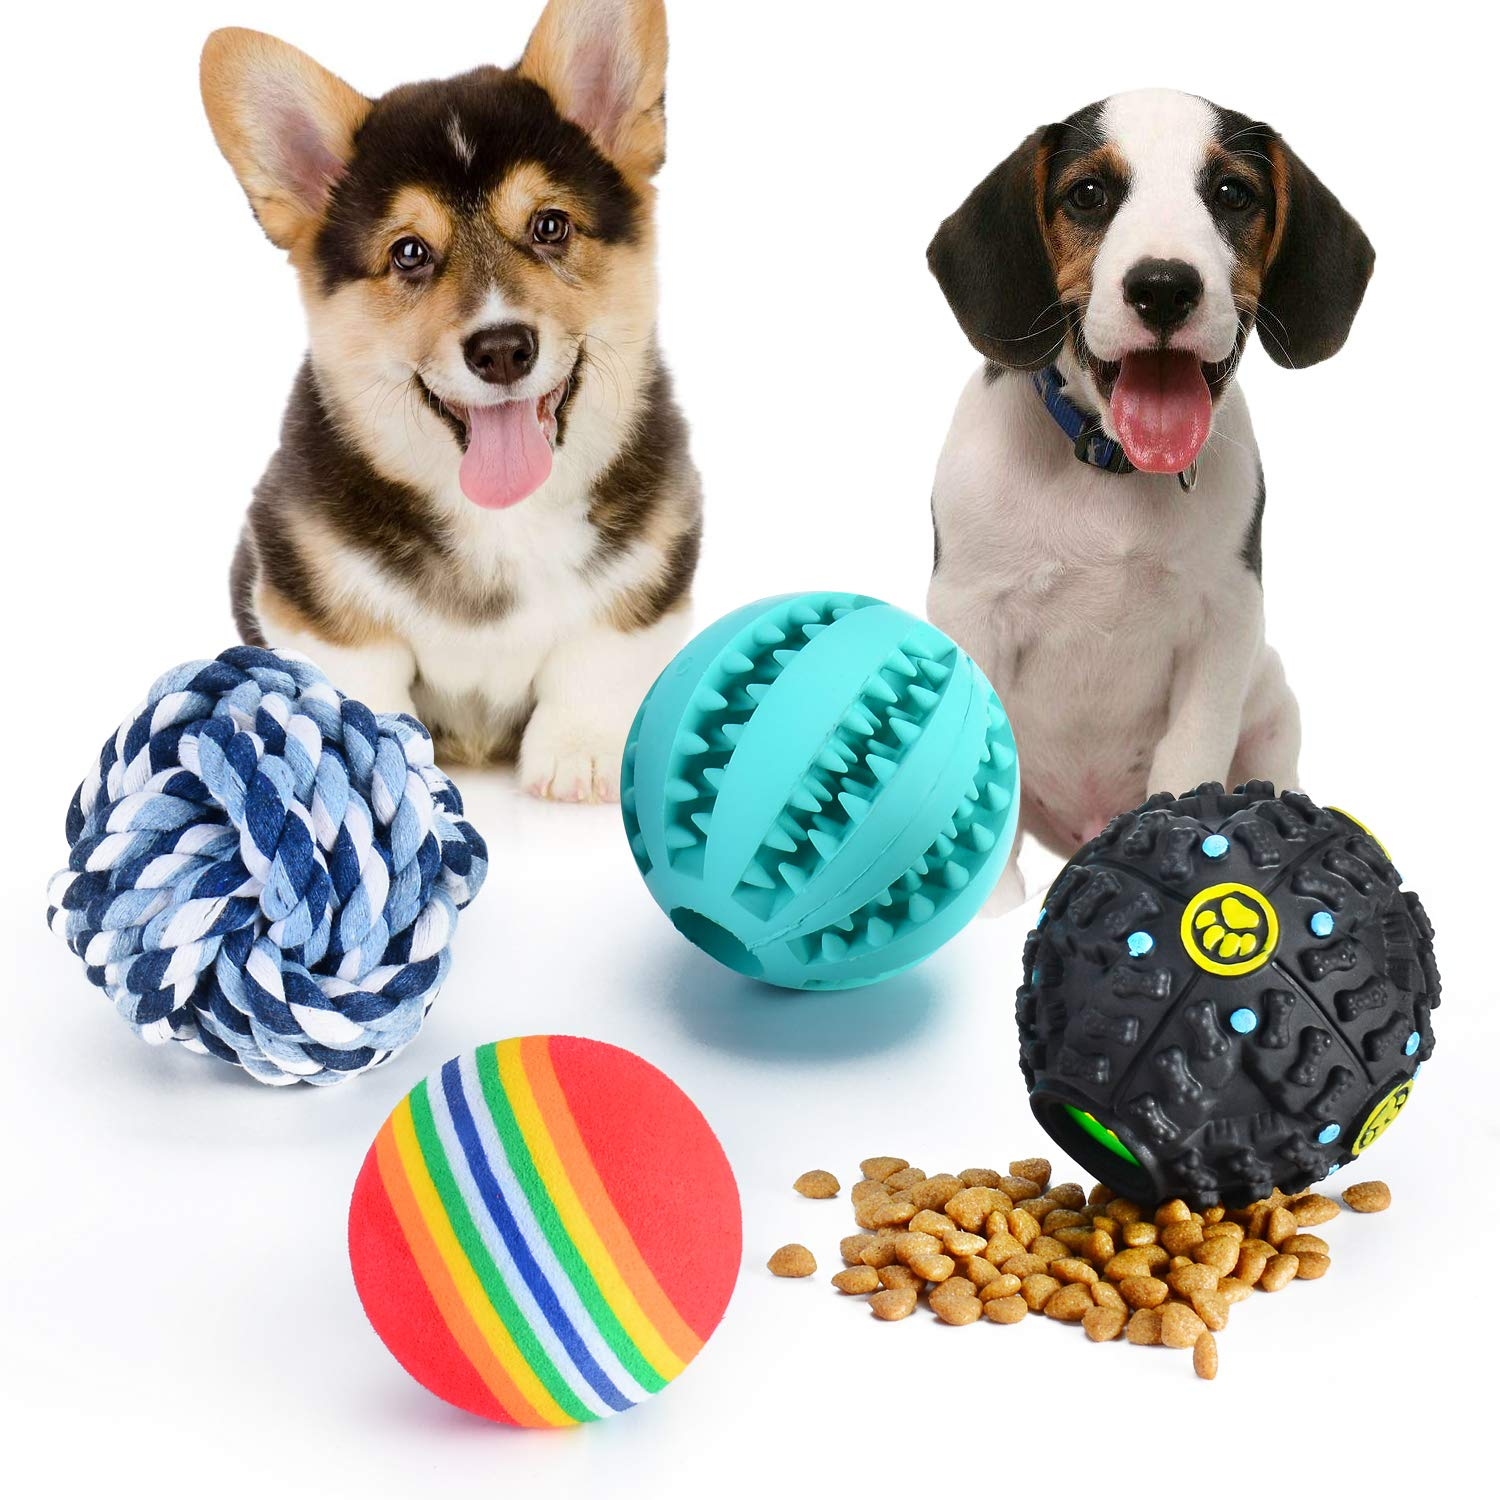 MIcion Dog Treat Dispensing Toy, Rubber Dog Chew Toy Dog Educational Toy IQ Treat Ball Squeaker, Small Medium Dogs Improve IQ Cleaning Teeth Prevent Dental Diseases (4 pack)